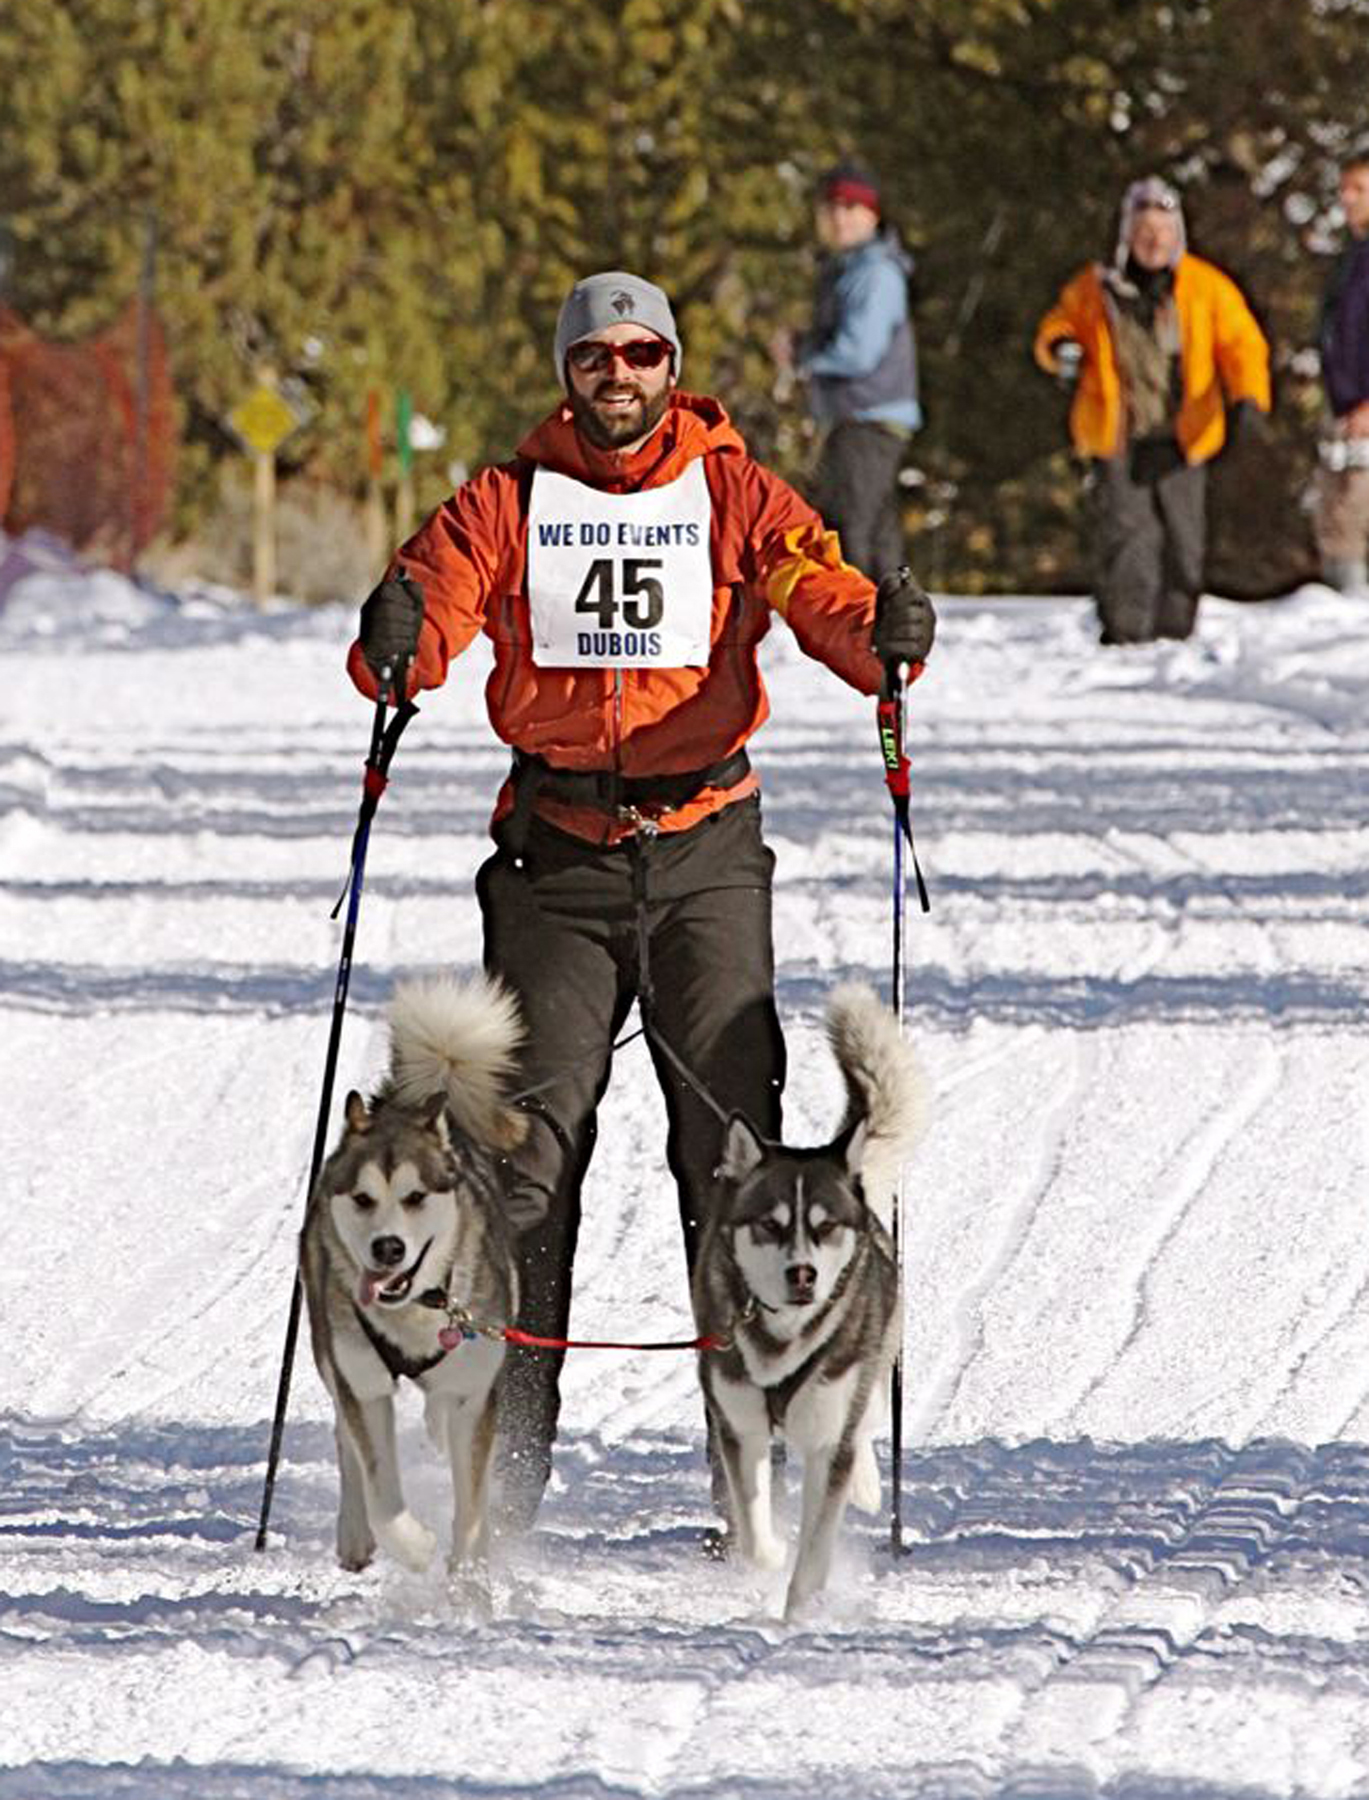 Have fun with the many activities during the Dubois Winterfest February 3-5, 2012.